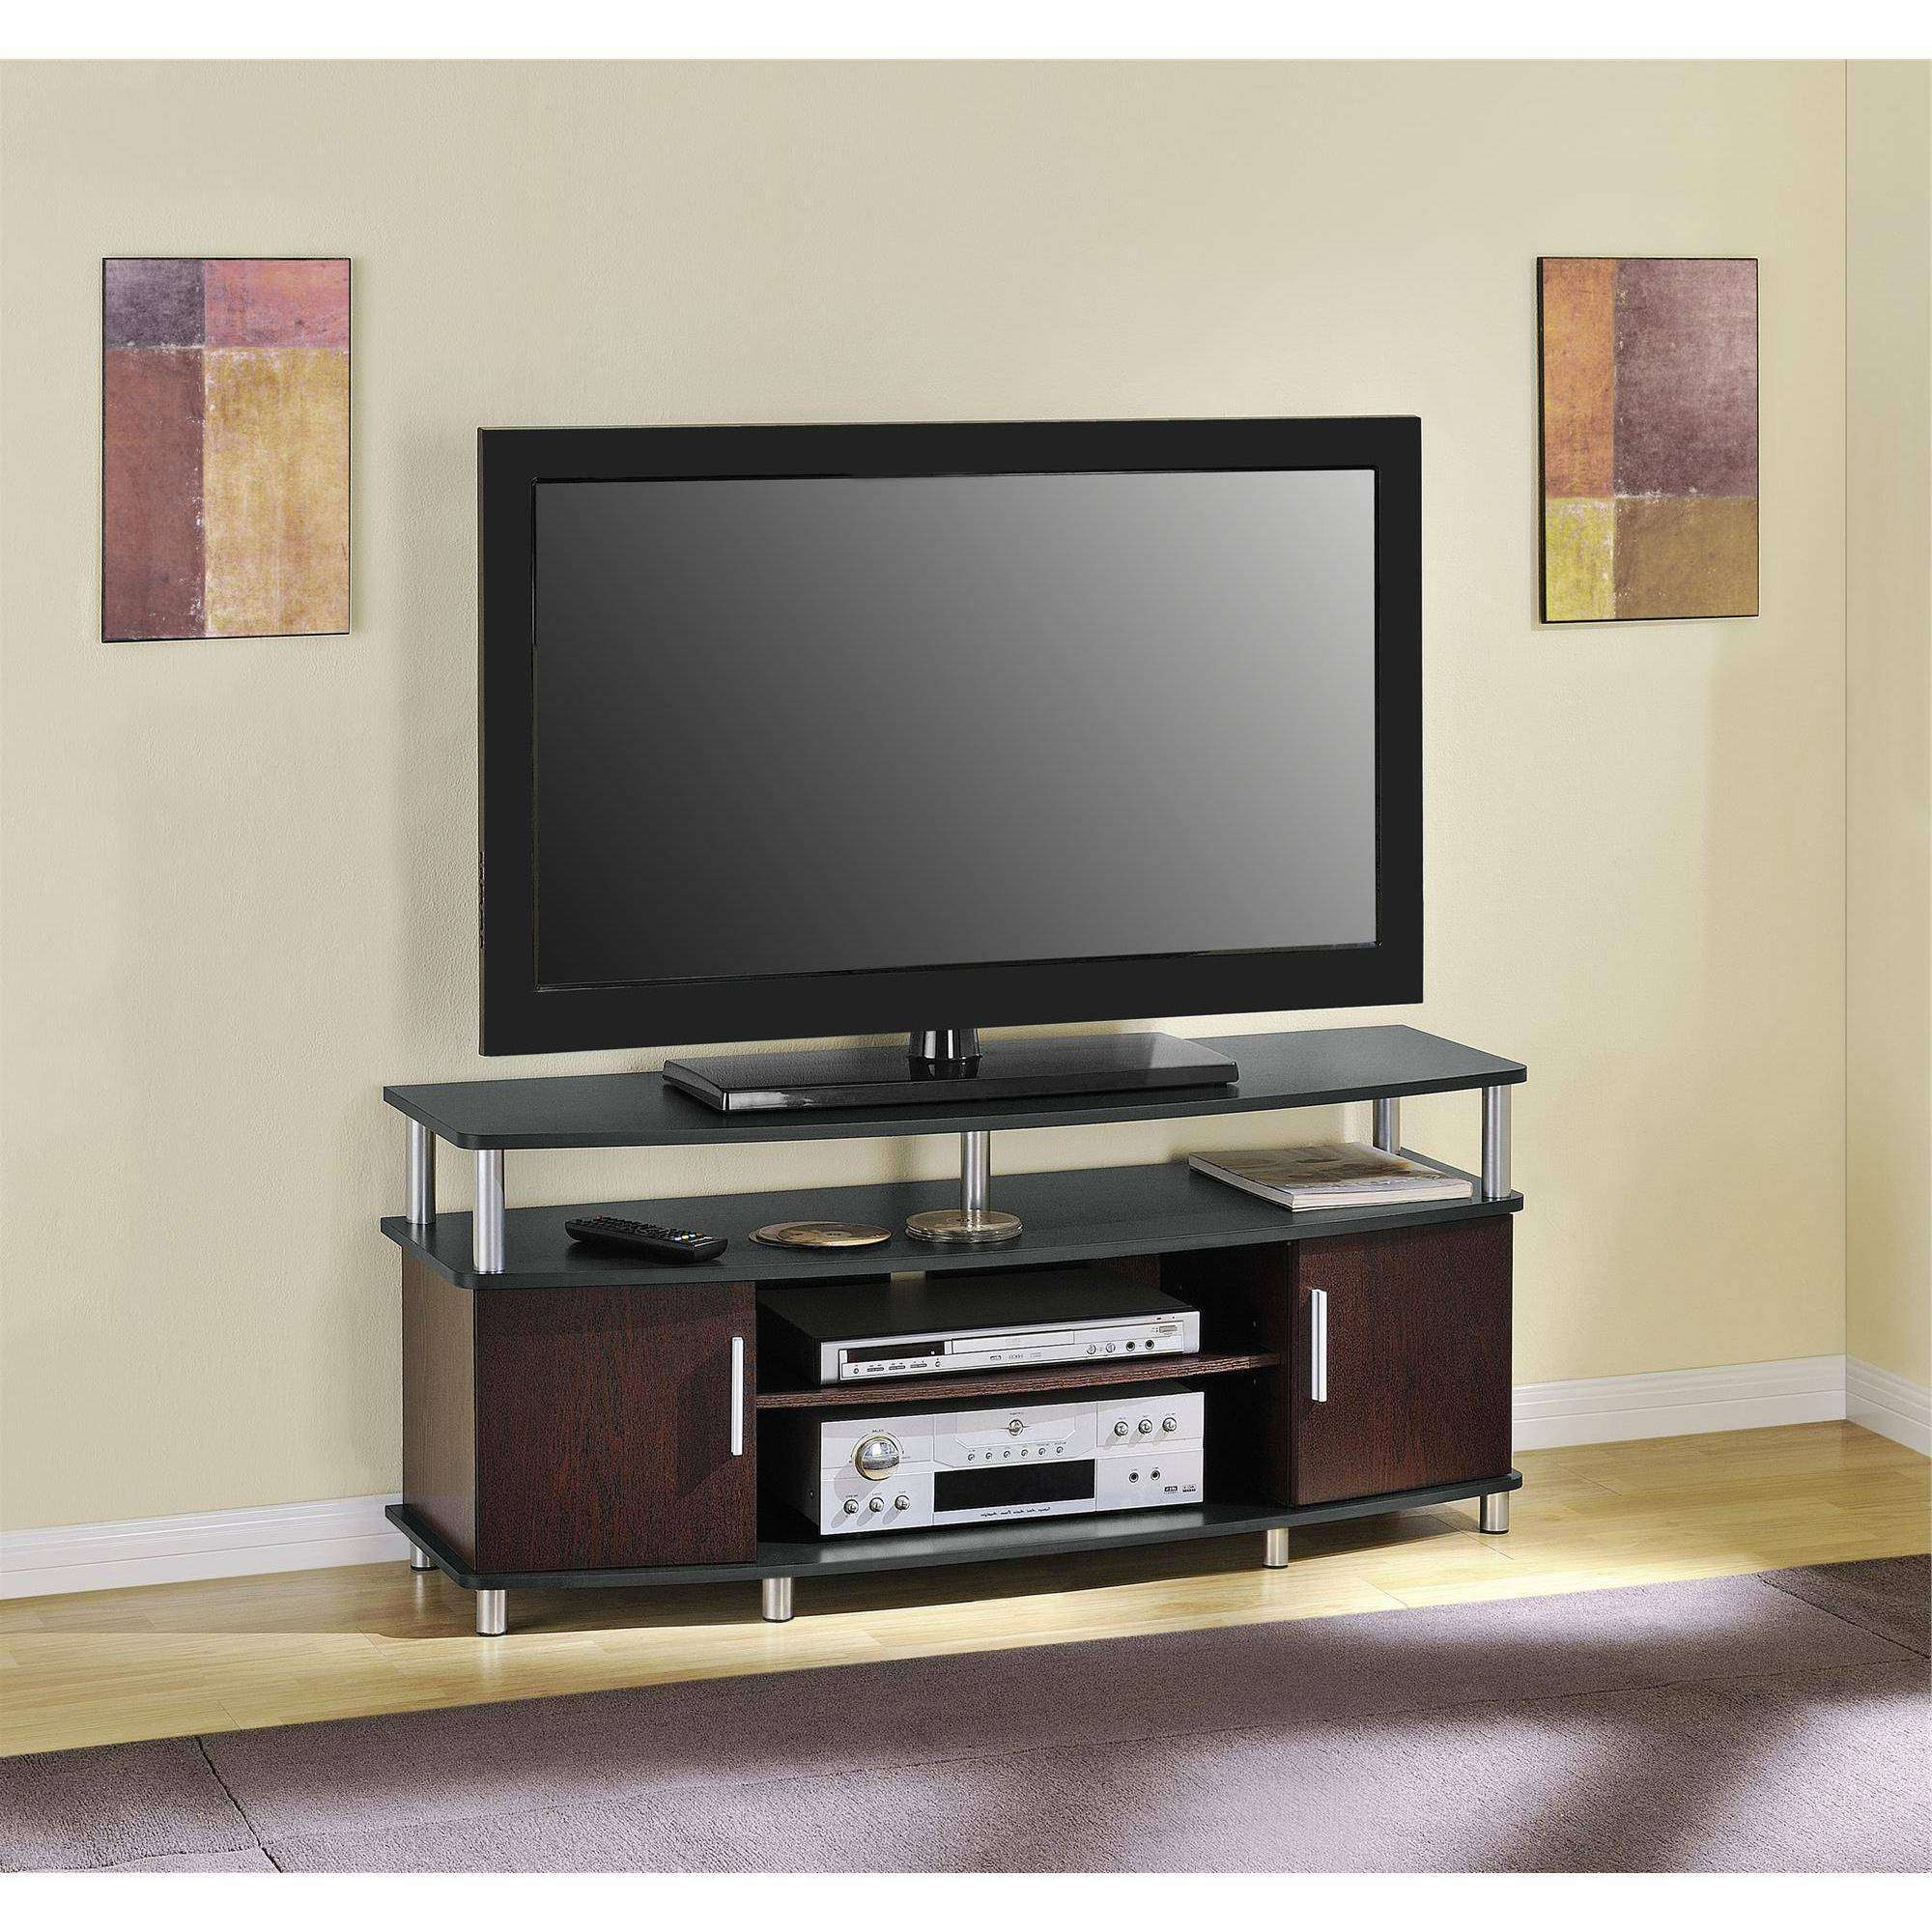 Tv : Corner Tv Stands Top 10 Best Rated Corner Tv Cabinets For Light Oak Tv Stands Flat Screen (View 14 of 15)